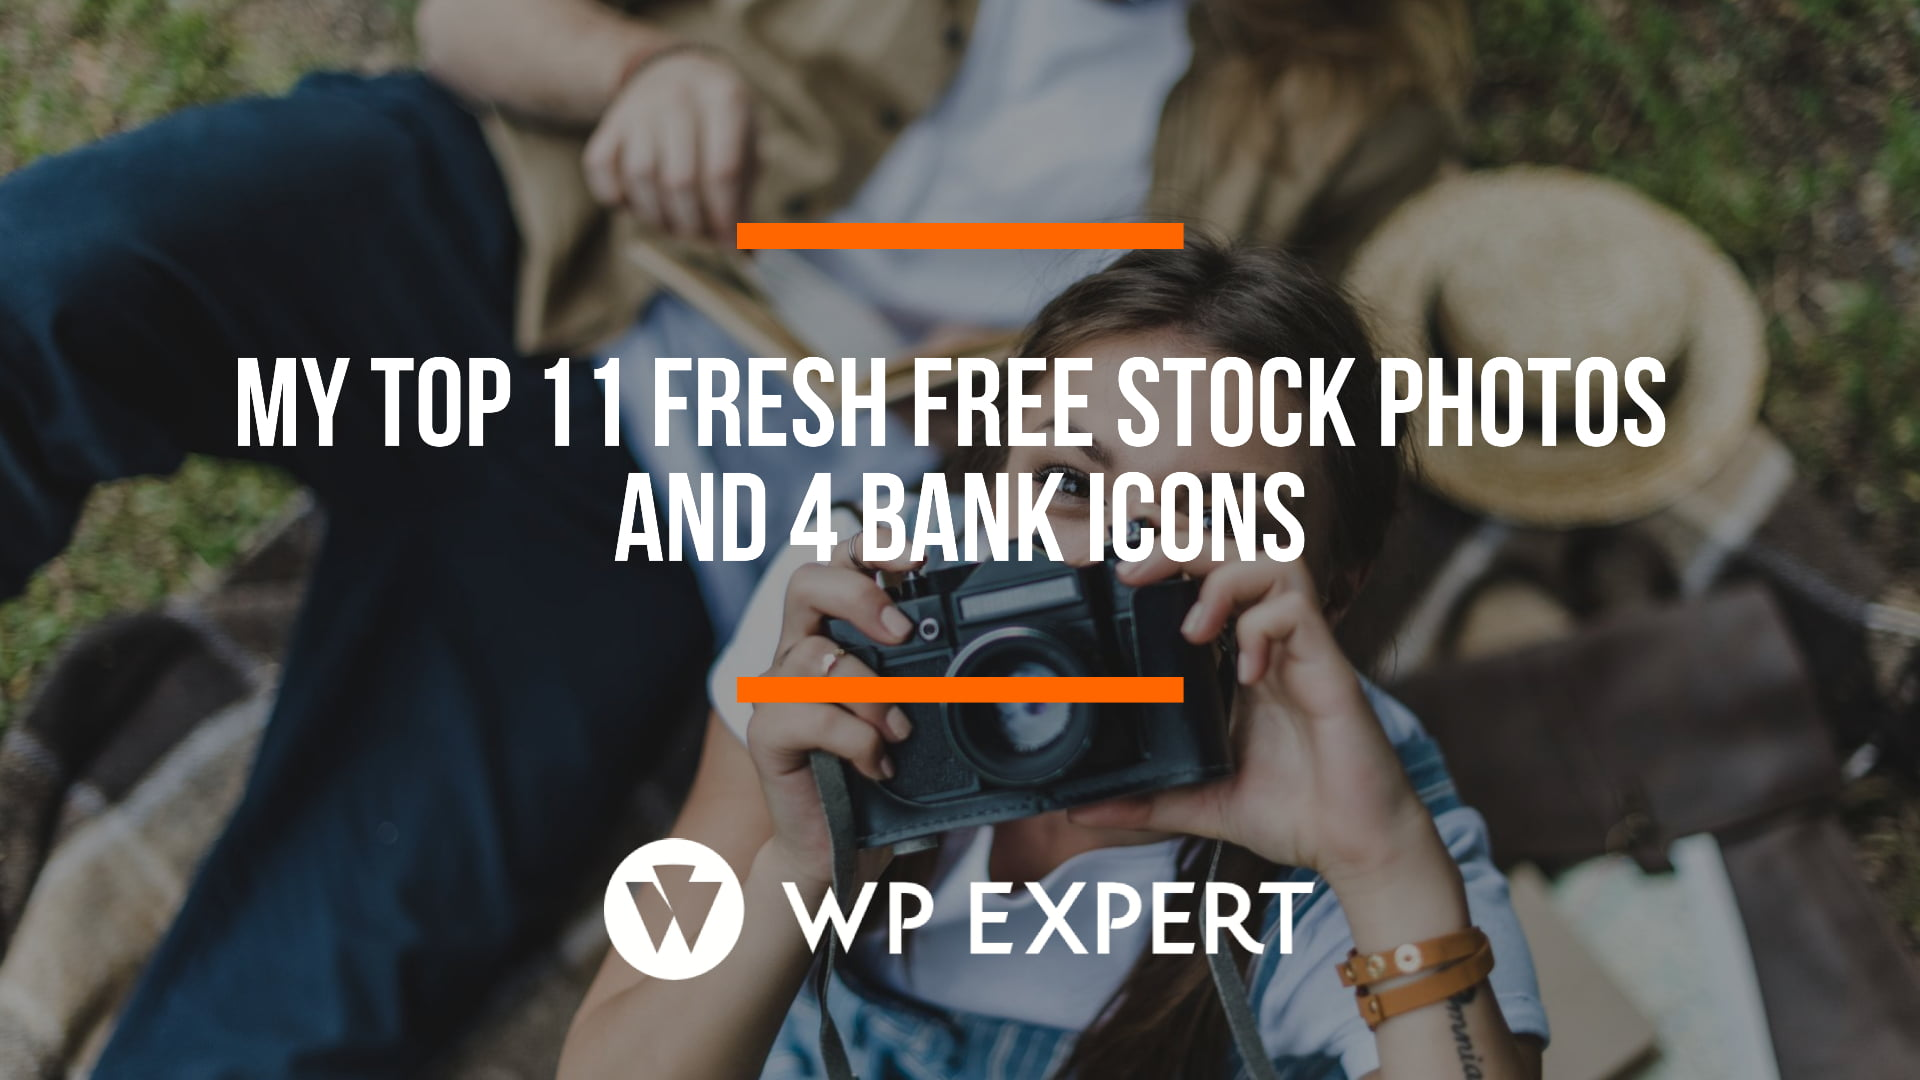 My top 11 fresh free stock photos and 4 bank icons